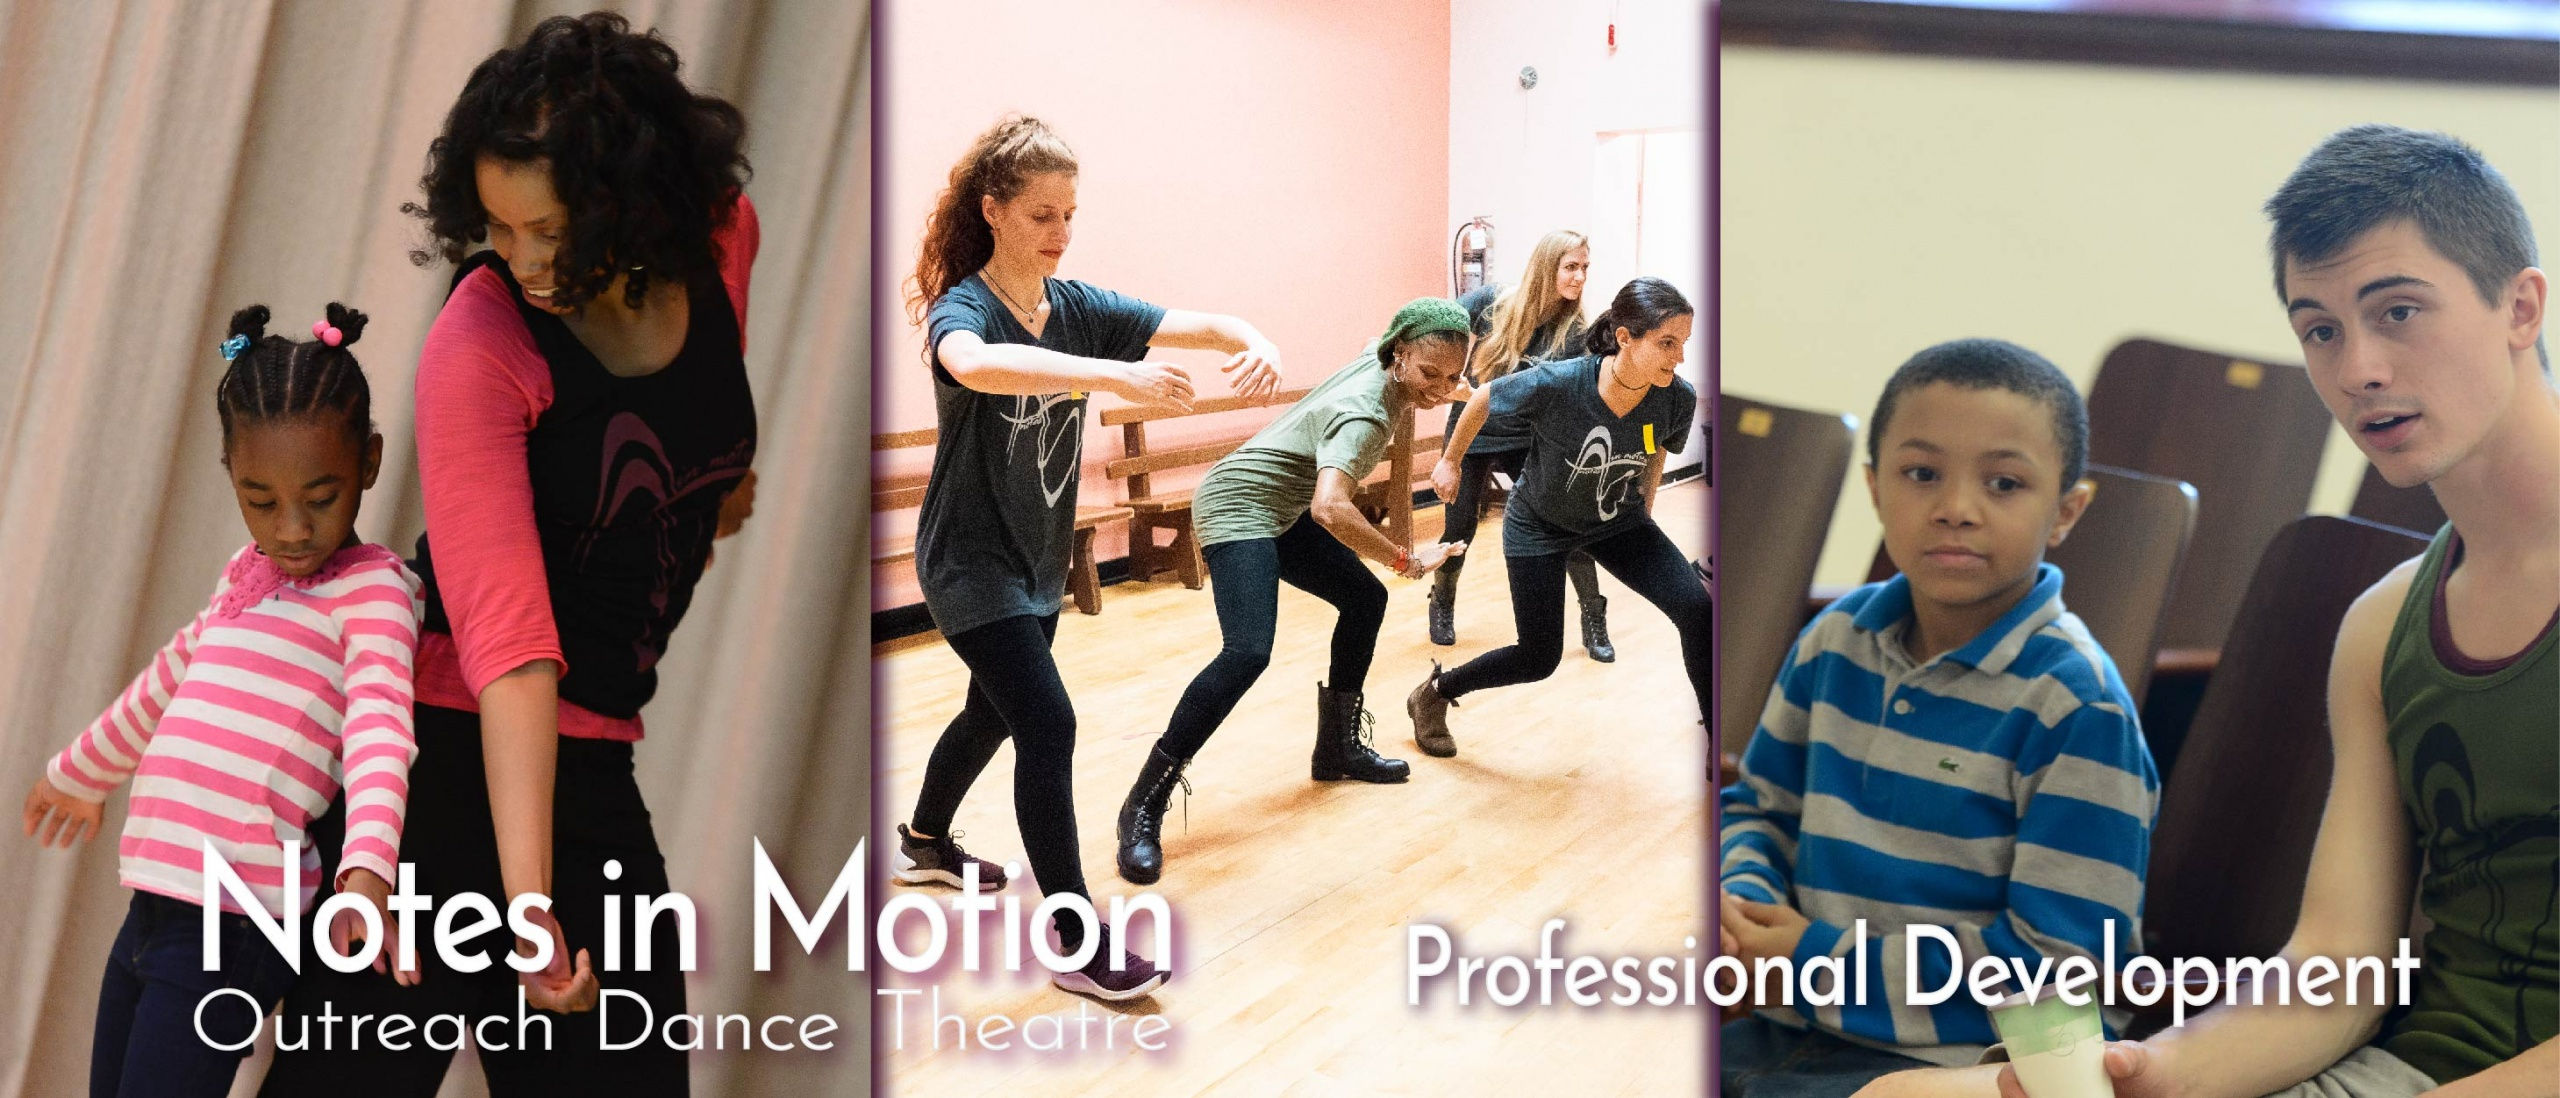 Teaching Artists of Notes in Motion working with NYC Public School kids